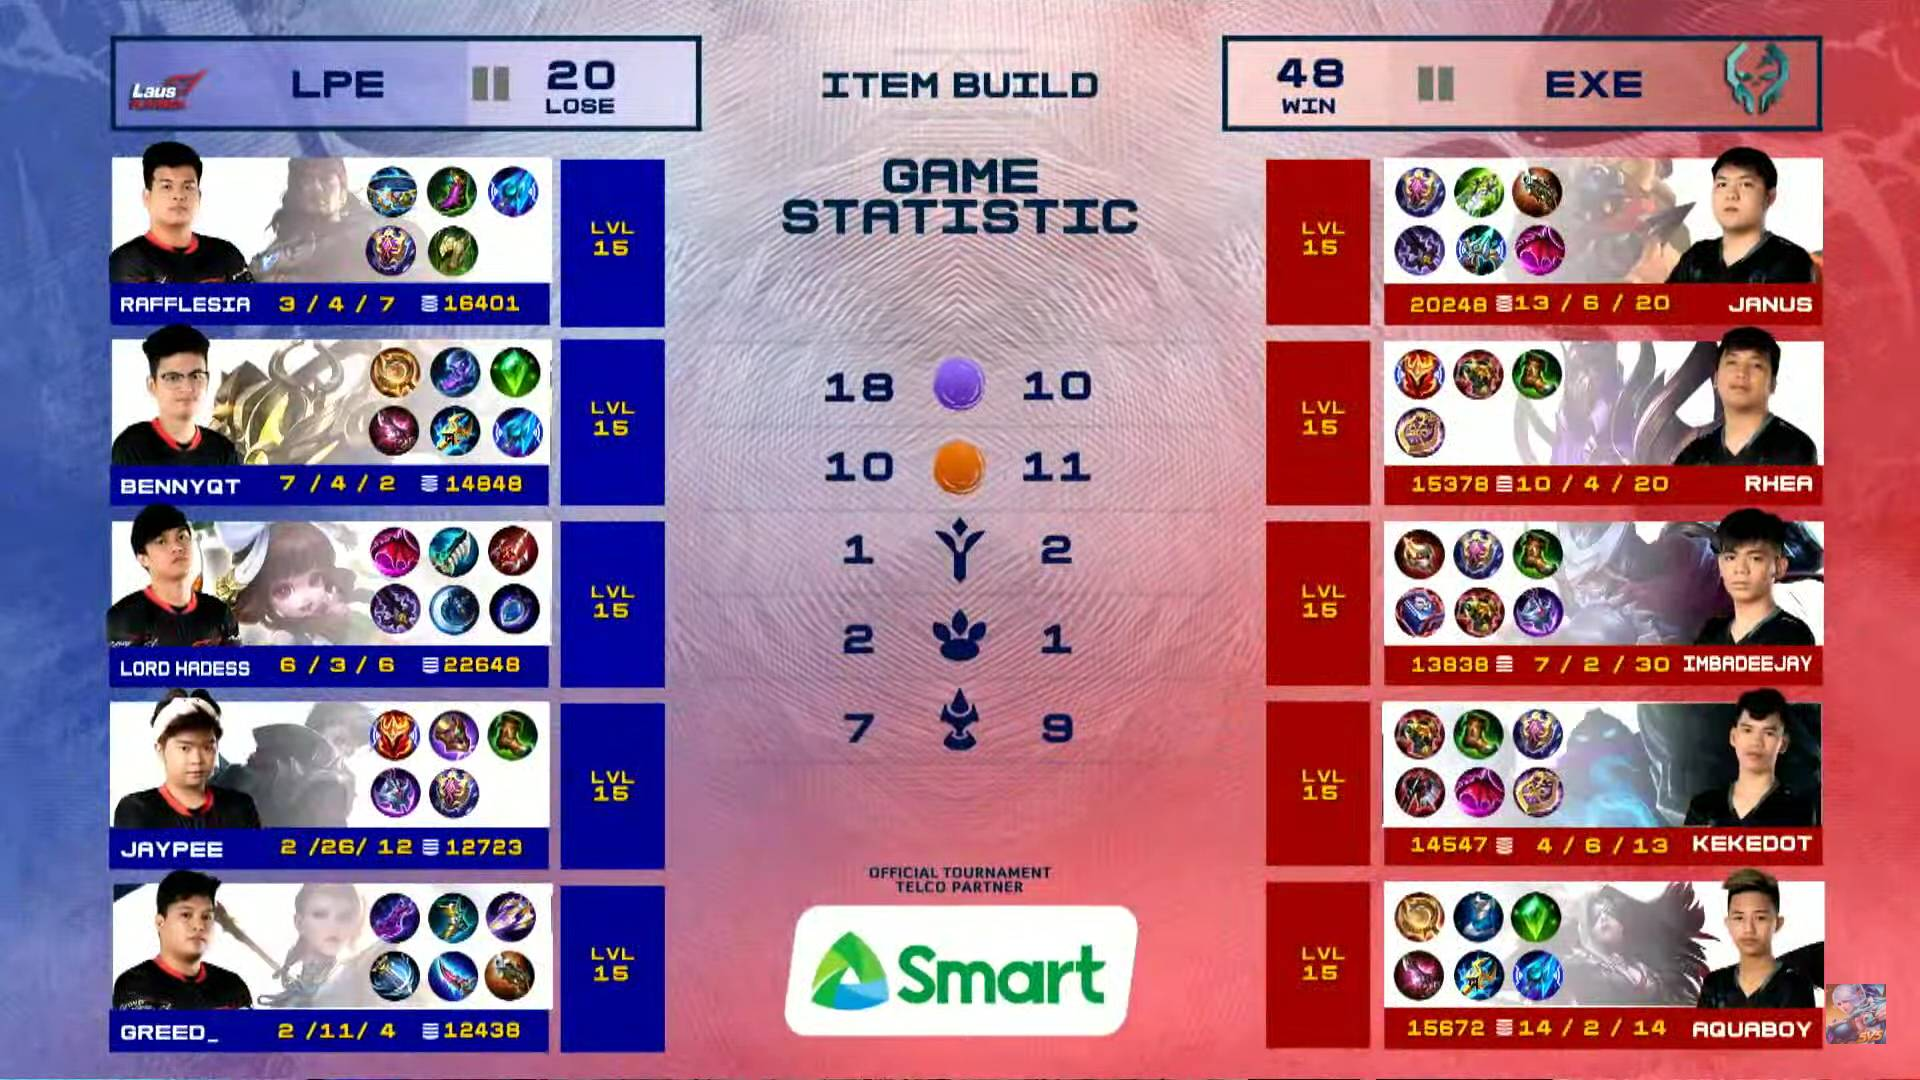 MPL-PH-Season-7-Execration-def-Playbook-Game-1 Kielvj's crucial Retribution play carries Execration to MPL PH 7 playoffs ESports Mobile Legends MPL-PH News  - philippine sports news